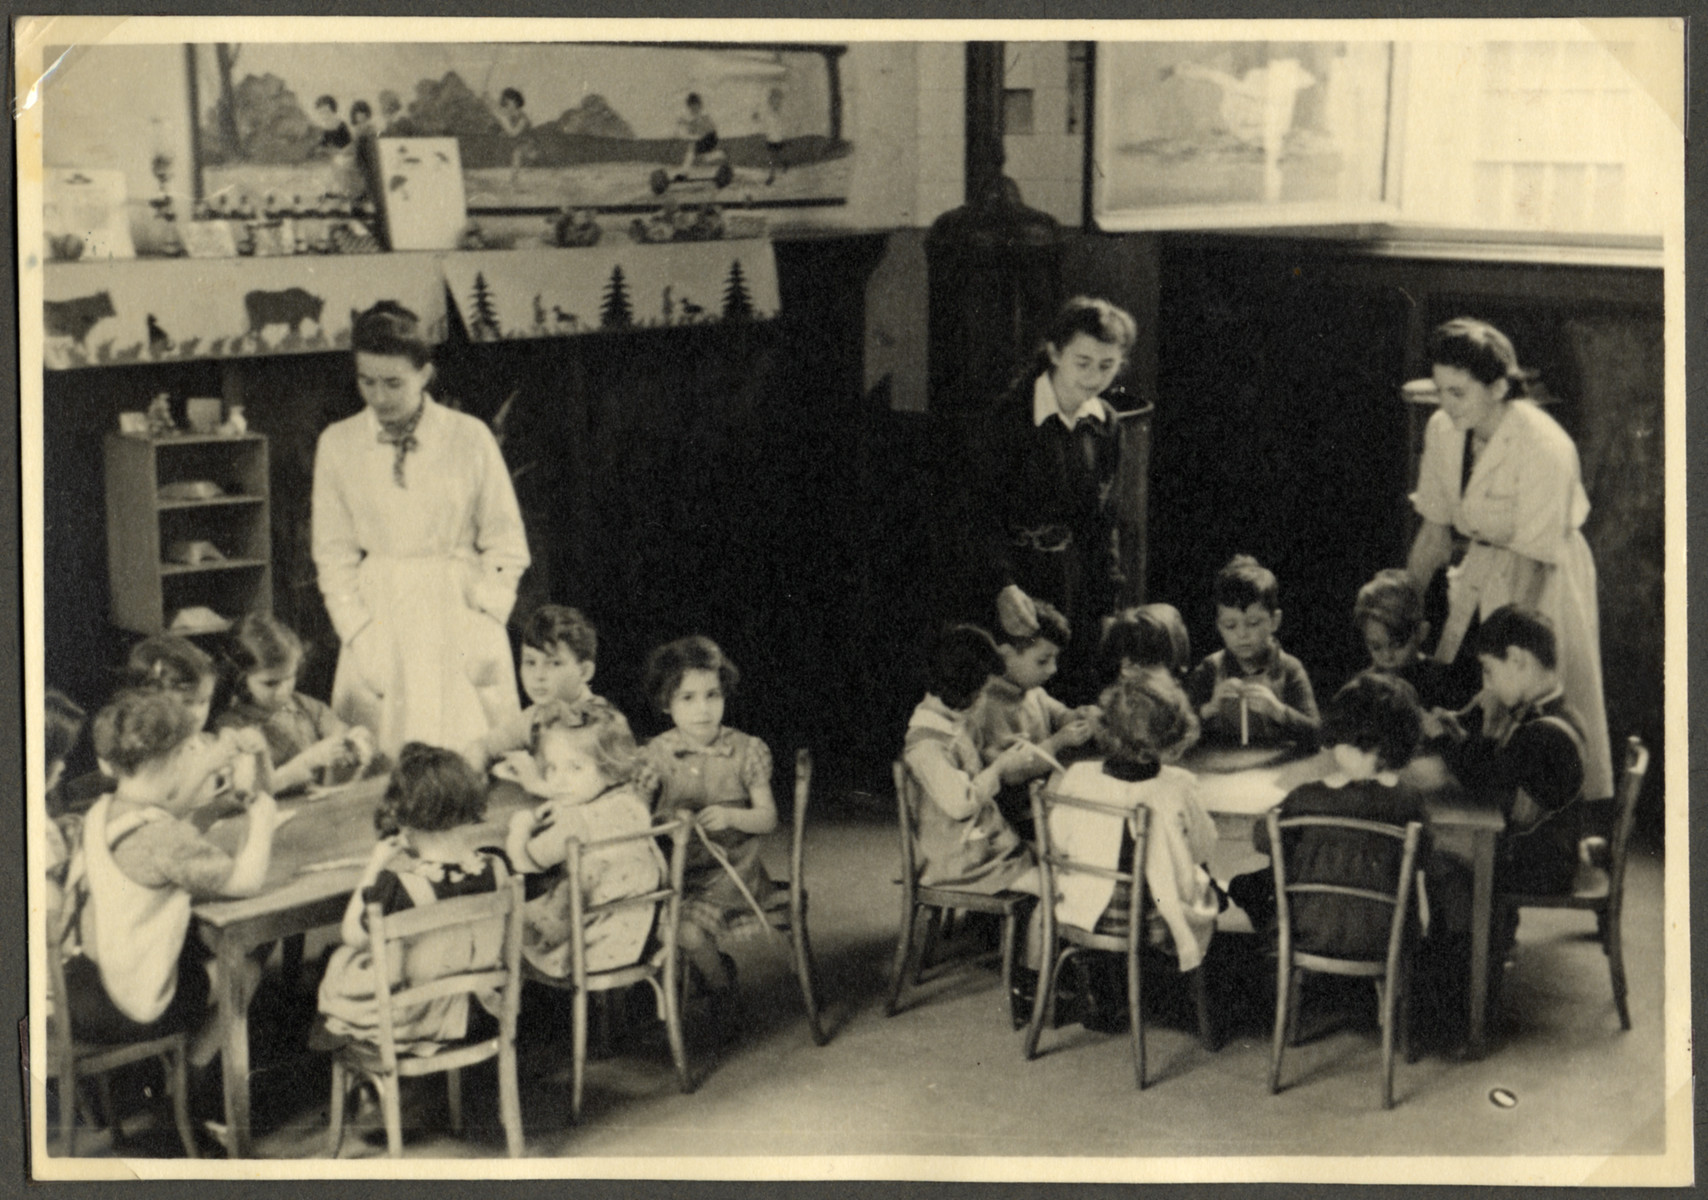 Children sit at tables to do an art project in a classroom in the Nos Petits Jewish kindergarten.  The teacher in the center is wearing a Star of David.